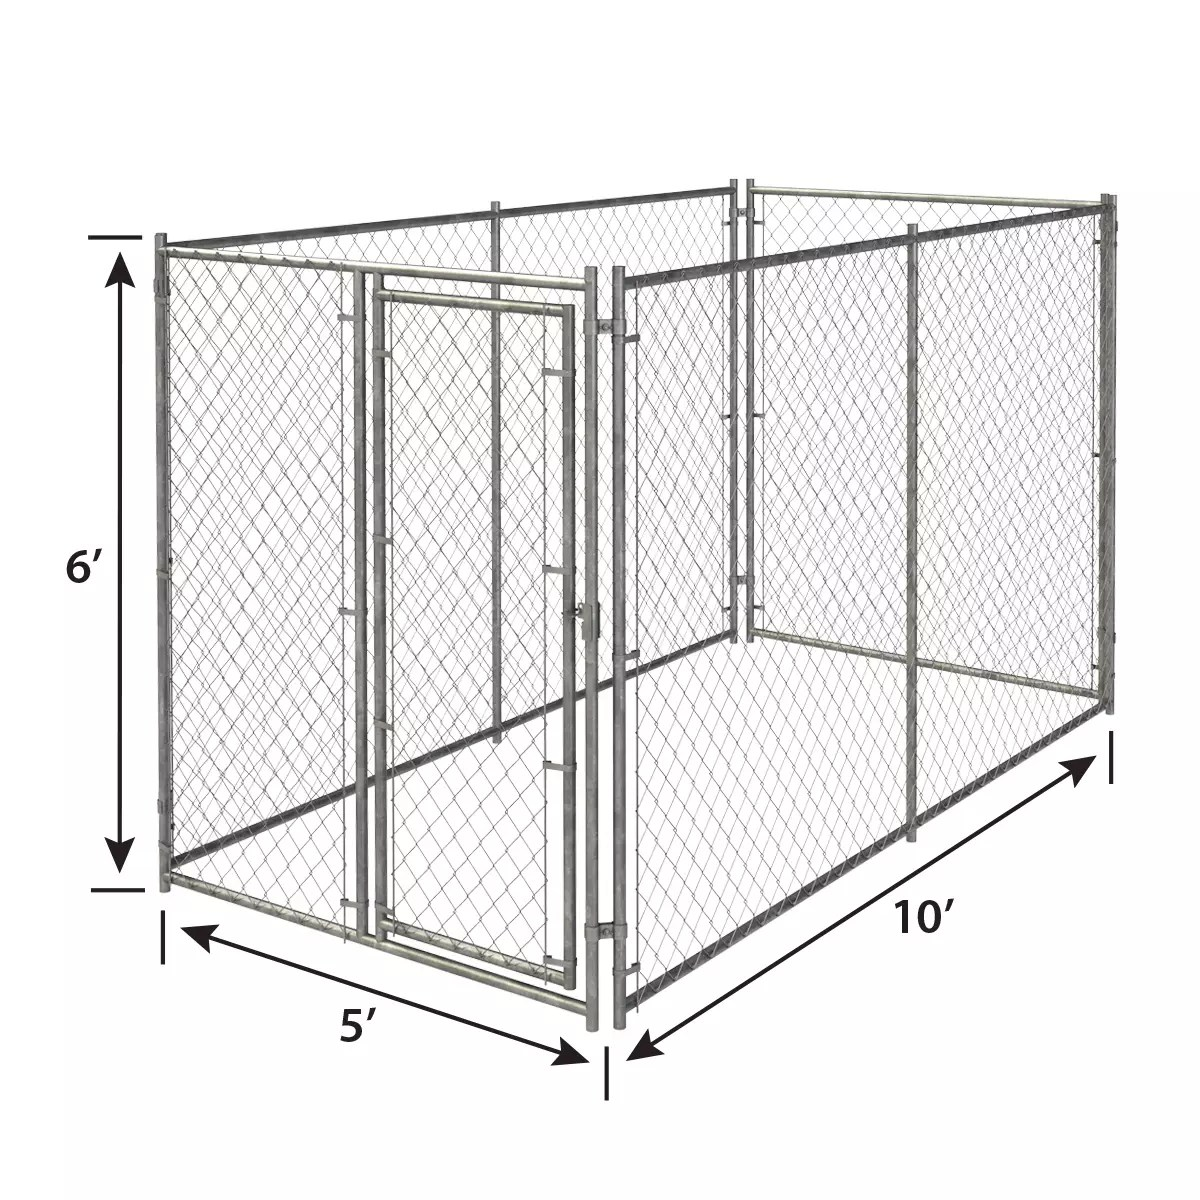 6ft H X 10ft W Chain Link Kennel Panel